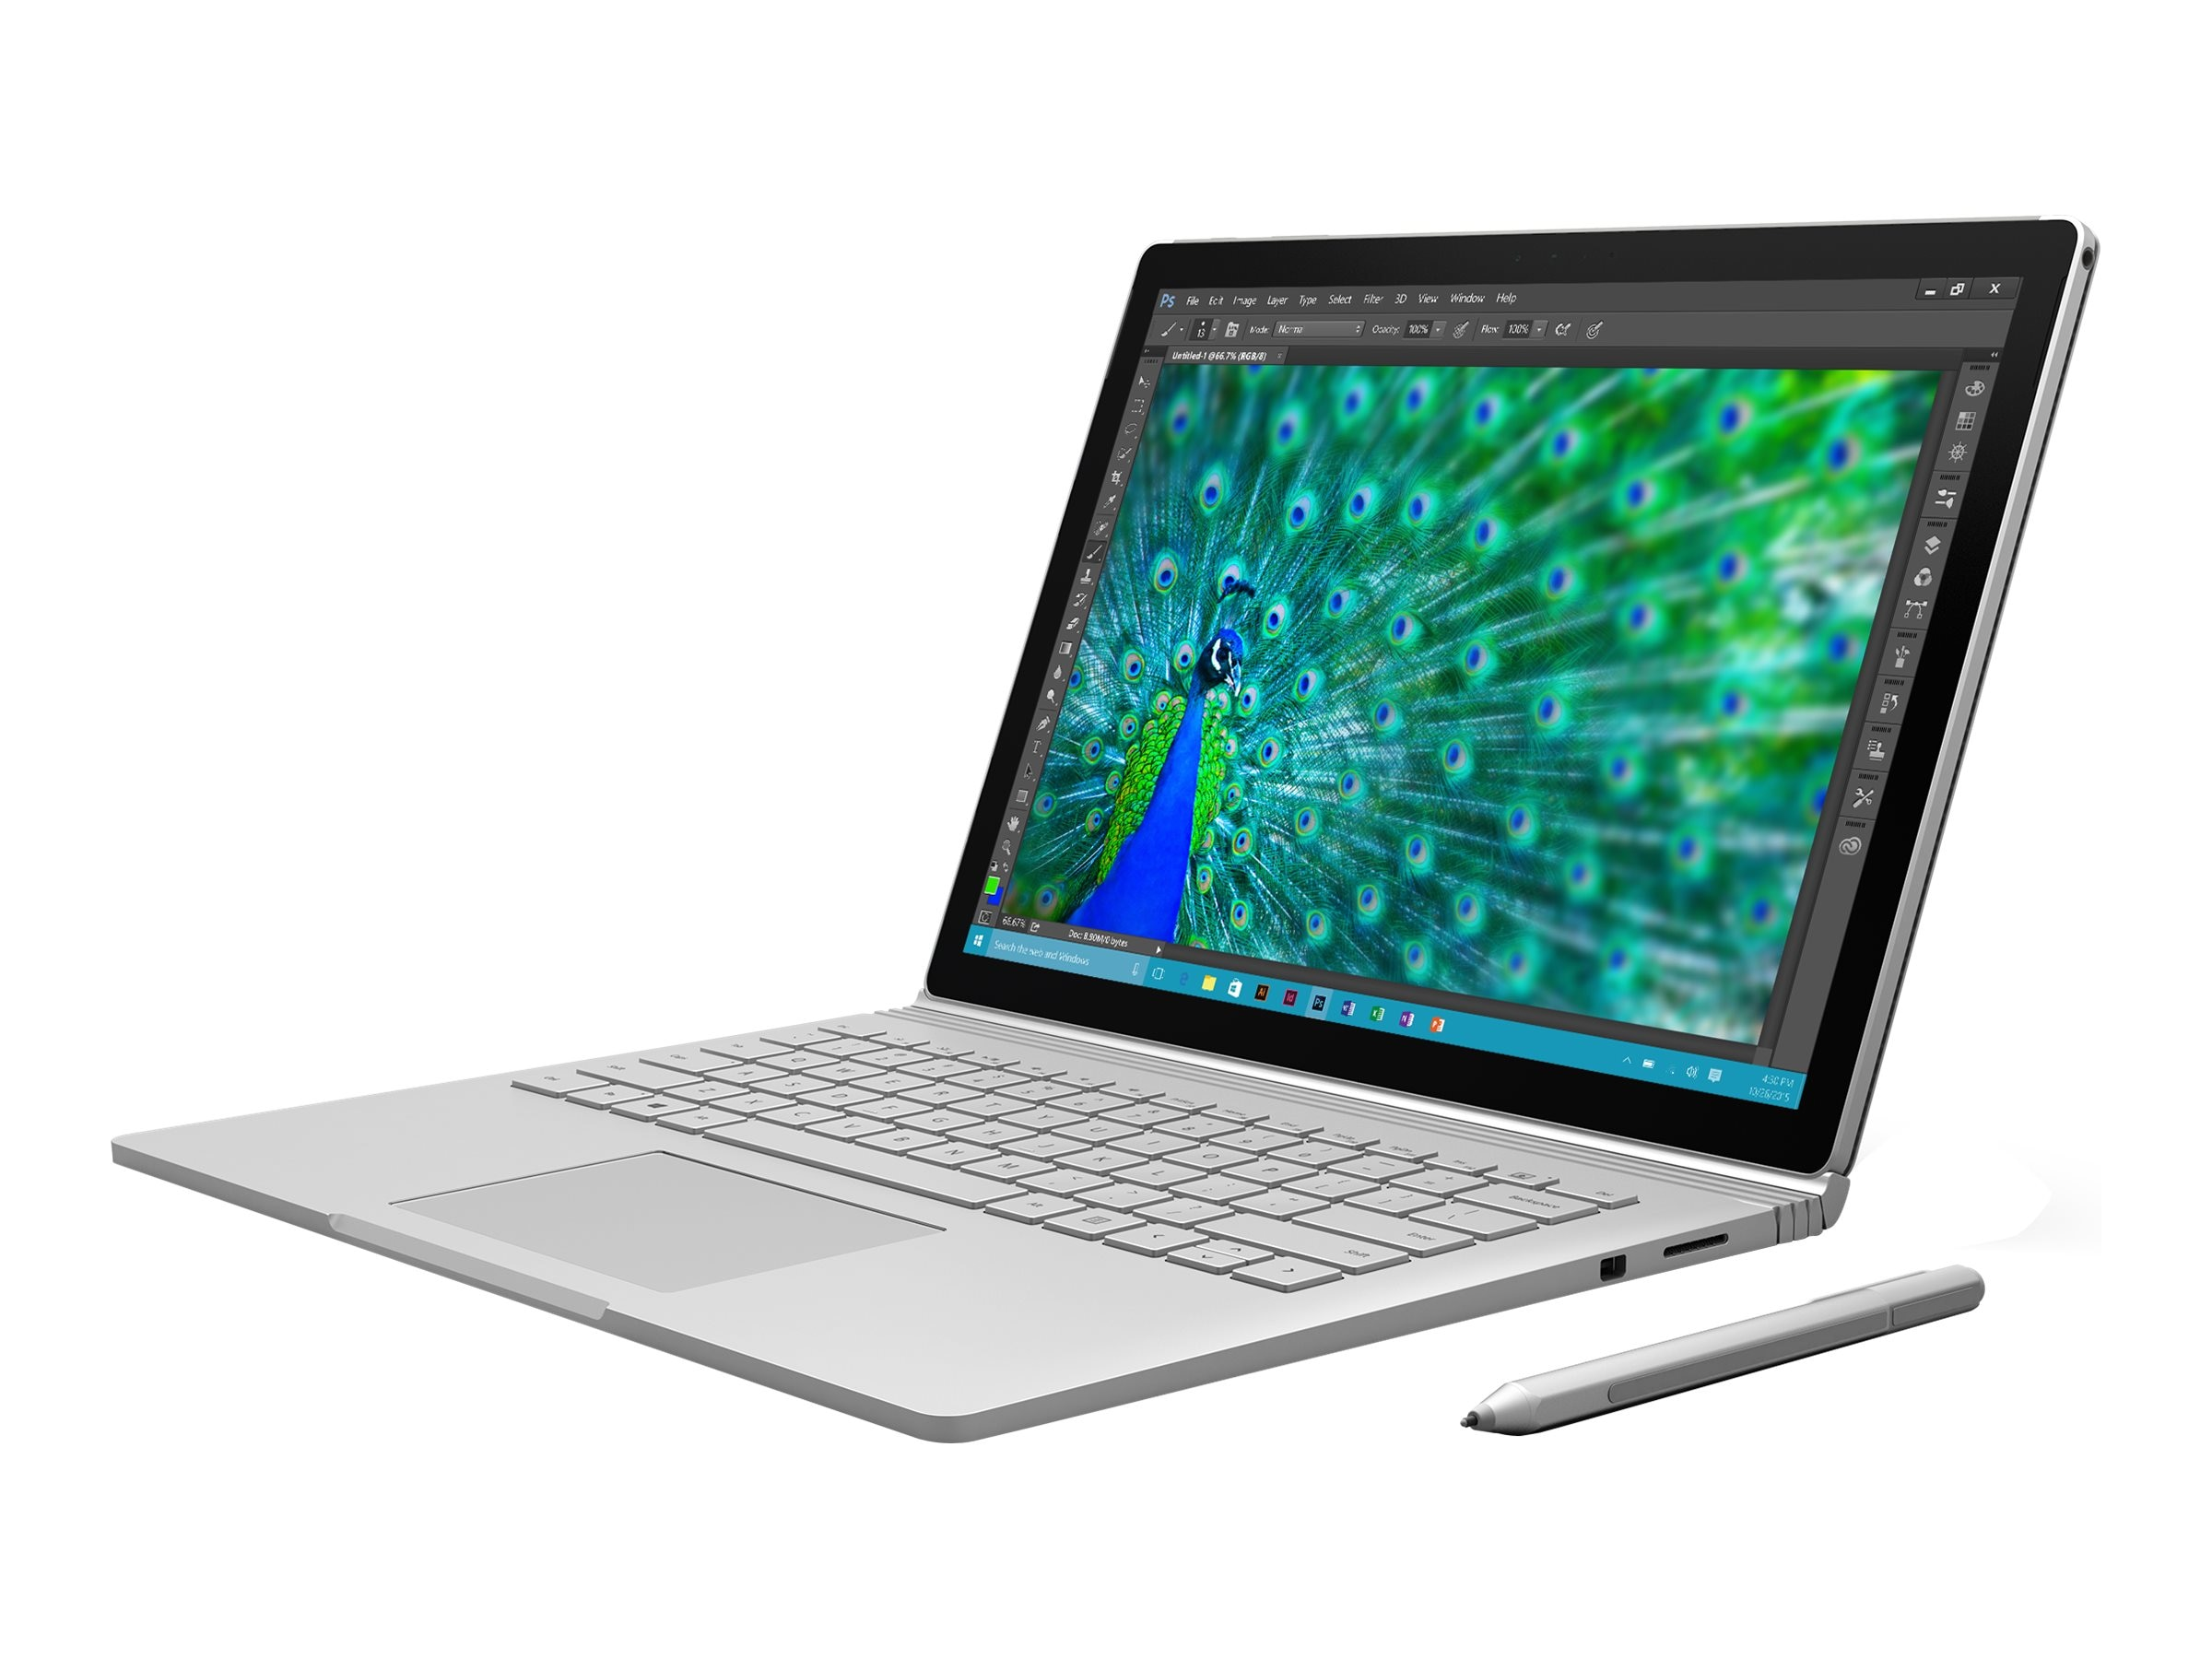 Microsoft Surface Book Core i7 dGPU 16GB 512GB, SW6-00001, 30734259, Notebooks - Convertible